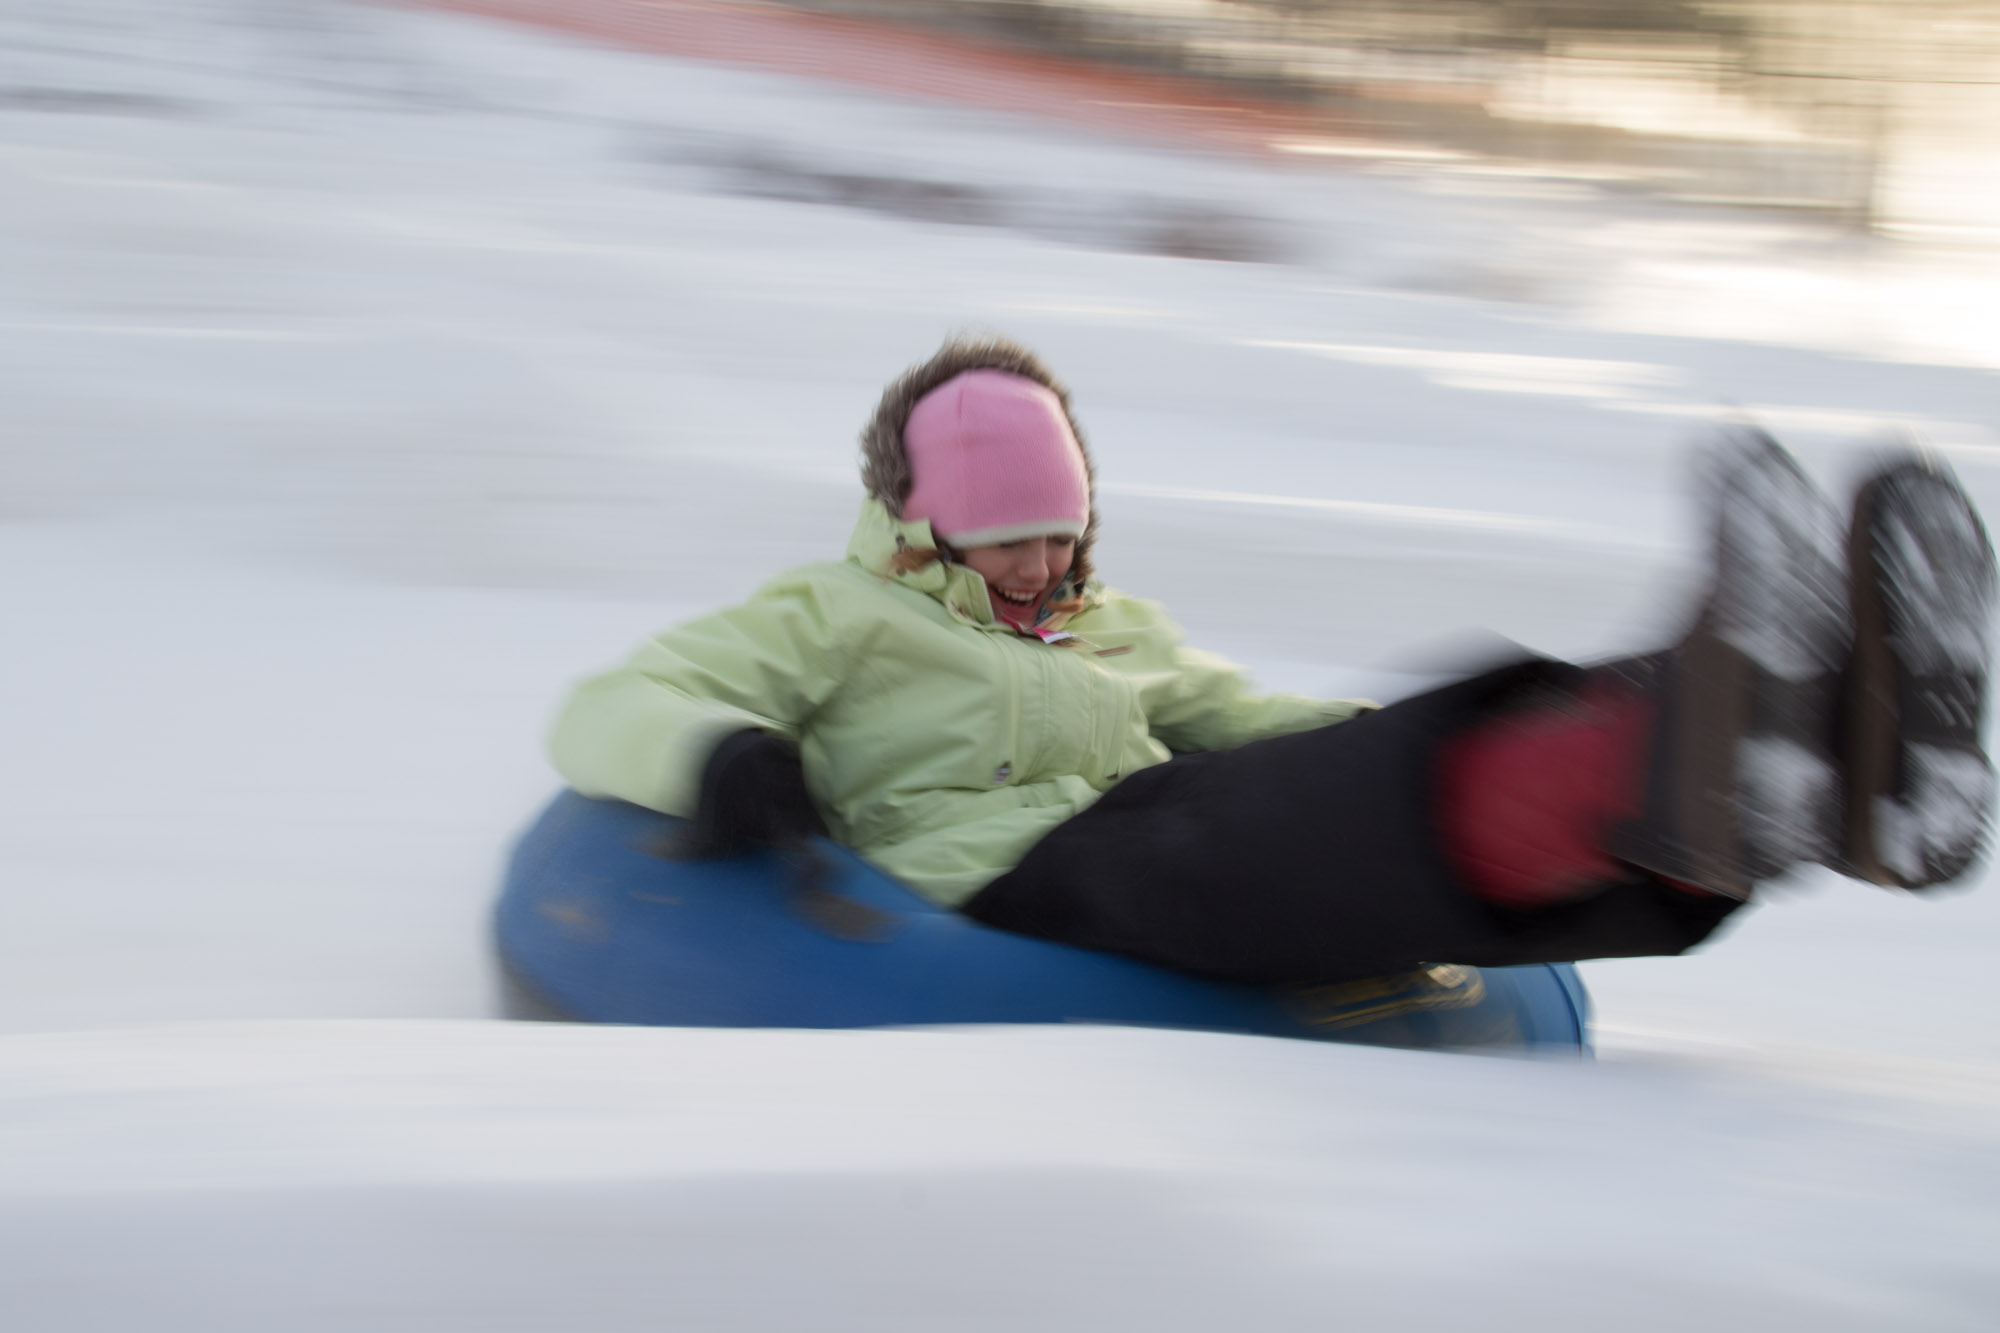 TUBE PARK HOURS - TUBE PARK CLOSED FOR THE SEASON !!THANKS FOR TUBING WITH US.